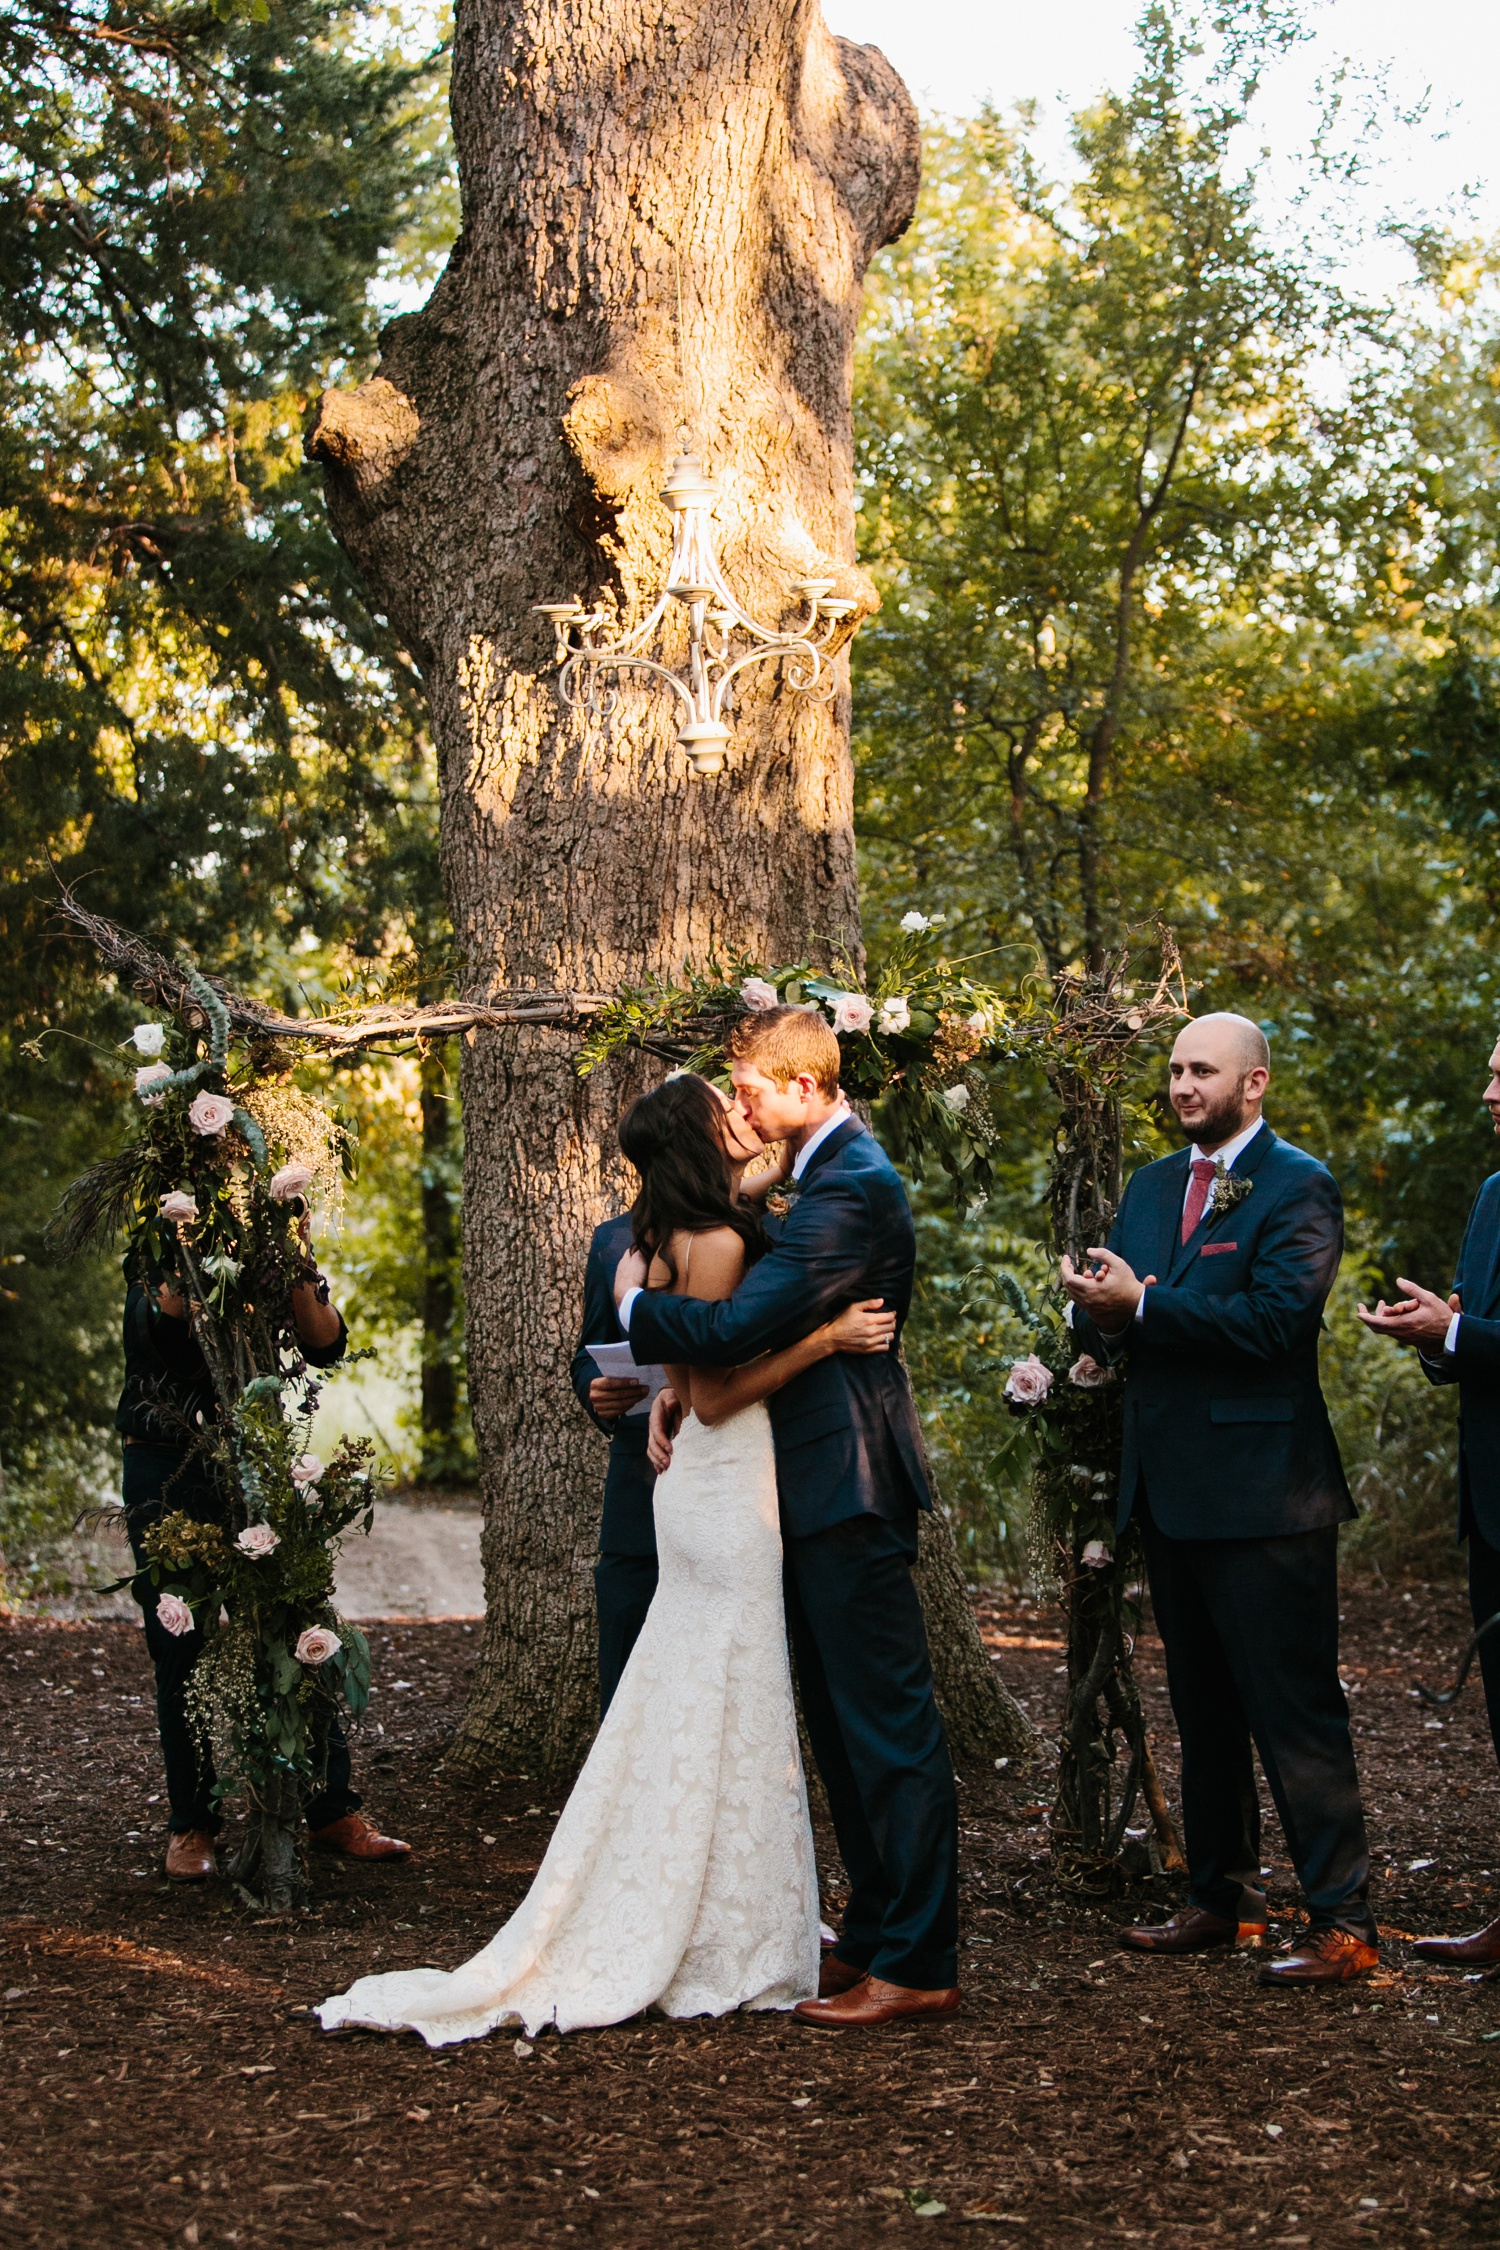 Erica + Henry | a bohemian inspired wedding at Chandlers Gardens in Salina, TX by North Texas Wedding Photographer Rachel Meagan Photography 093